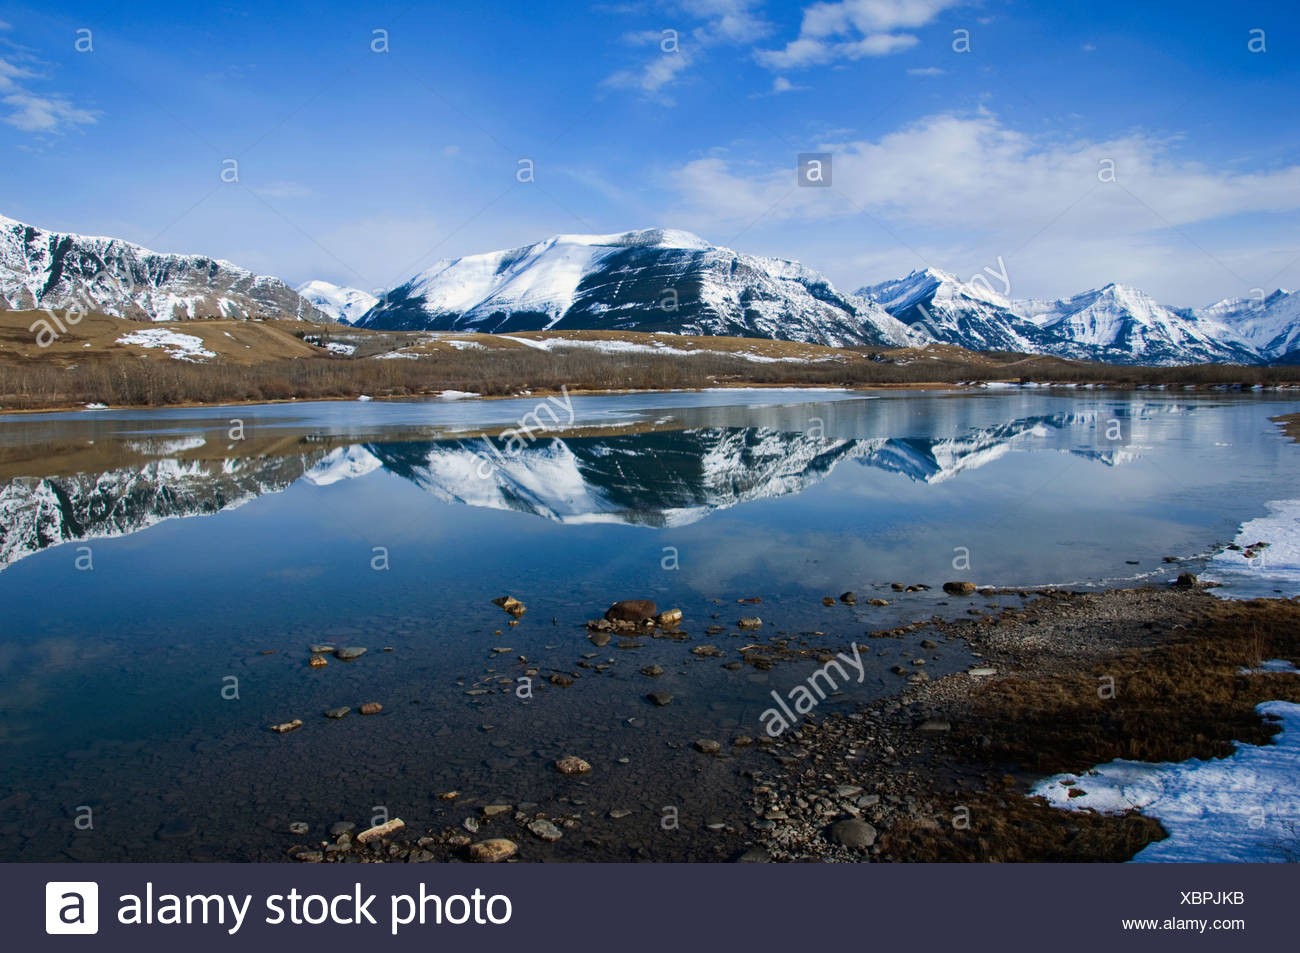 Reflection of area Mountains. Until the snowpac begins to melt the water level is down exposing gravel along the edges. As tempe - Stock Image